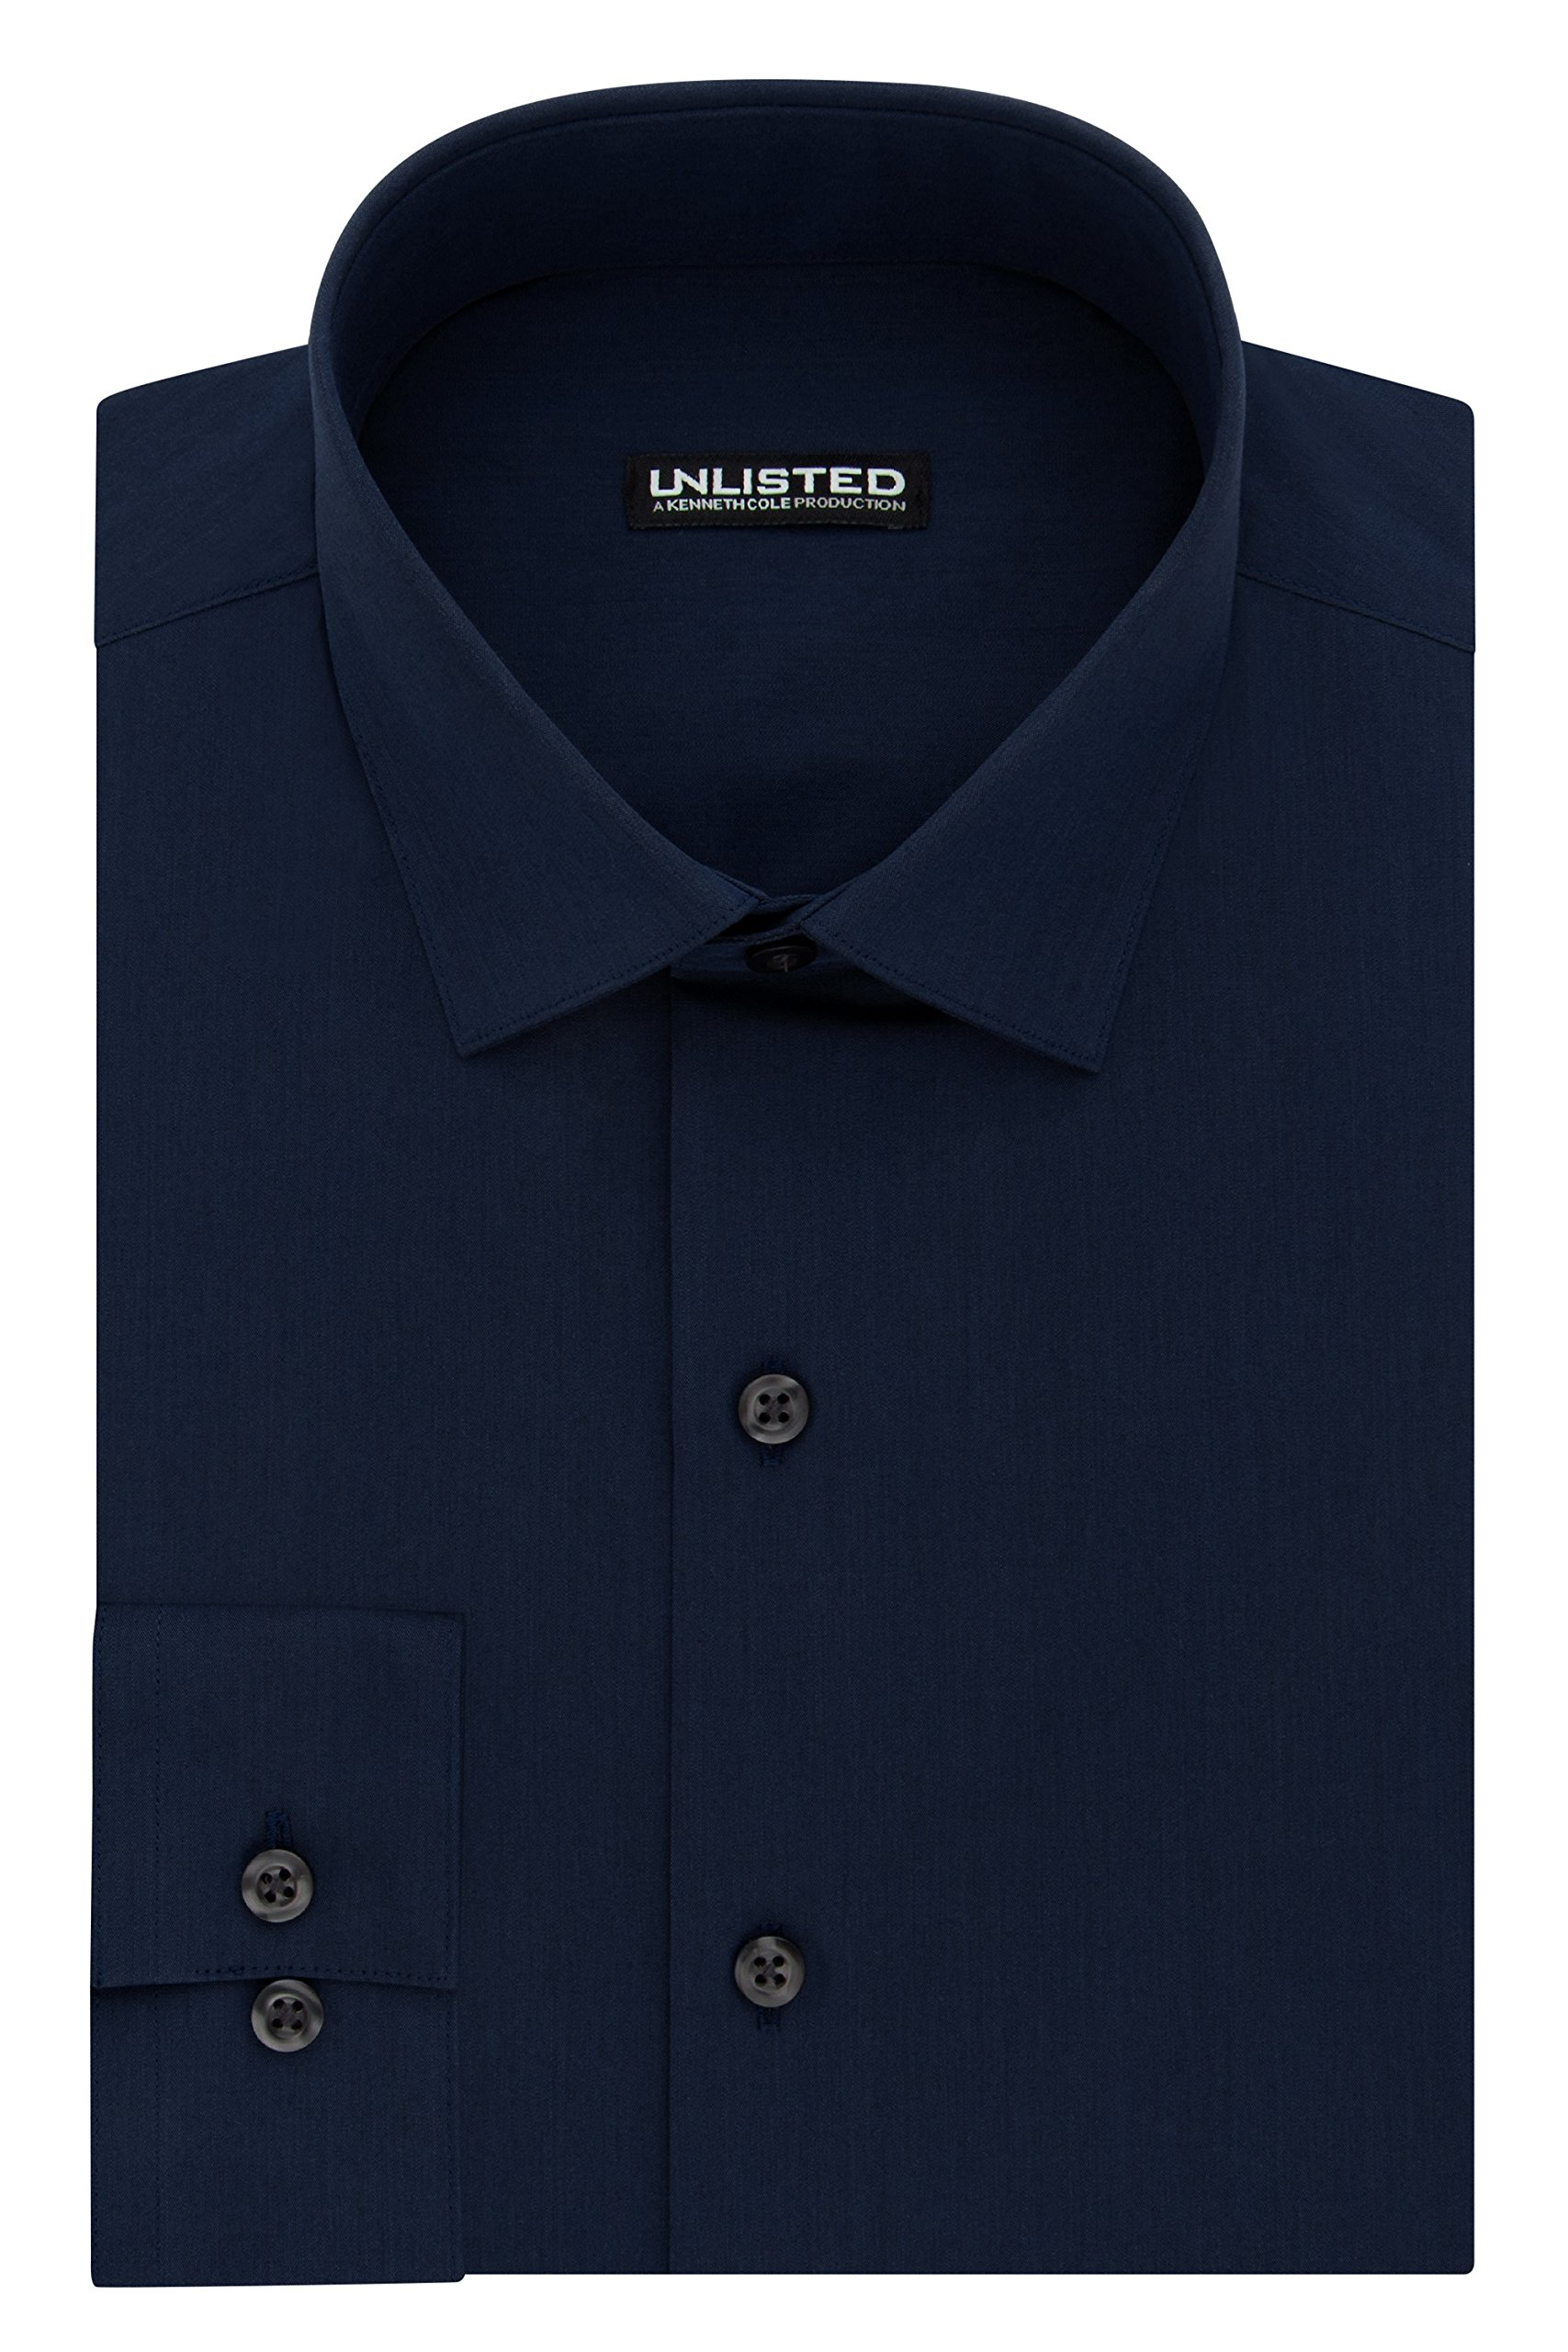 Kenneth Cole REACTION Unlisted Men's Slim Fit Solid Spread Collar Dress Shirt, Medium Blue, 18''-18.5'' Neck 34''-35'' Sleeve